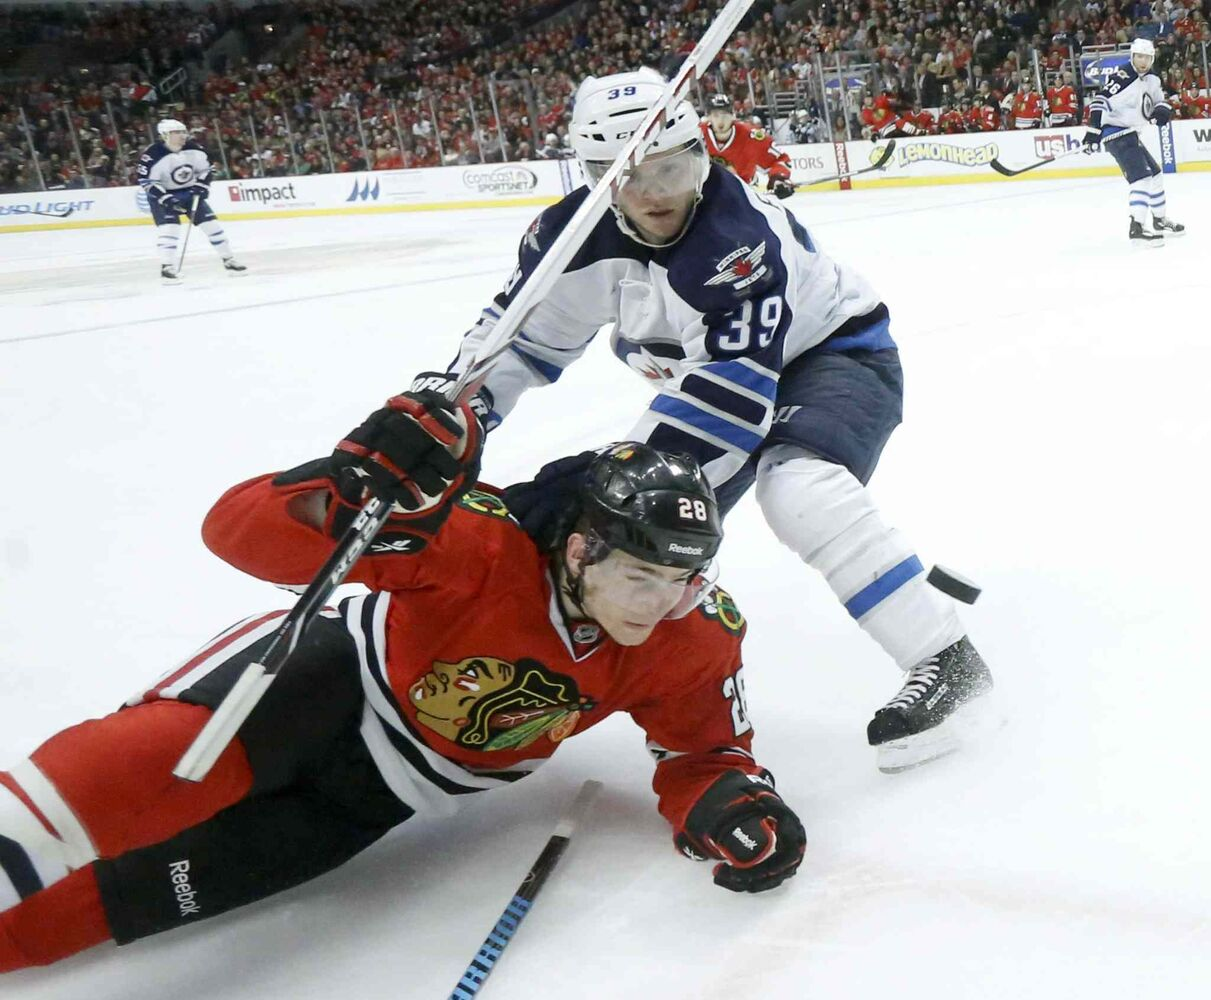 Jets defenseman Tobias Enstrom neutralizes Blackhawks right wing Ben Smith. (Charles Rex Arbogast / The Associated Press)